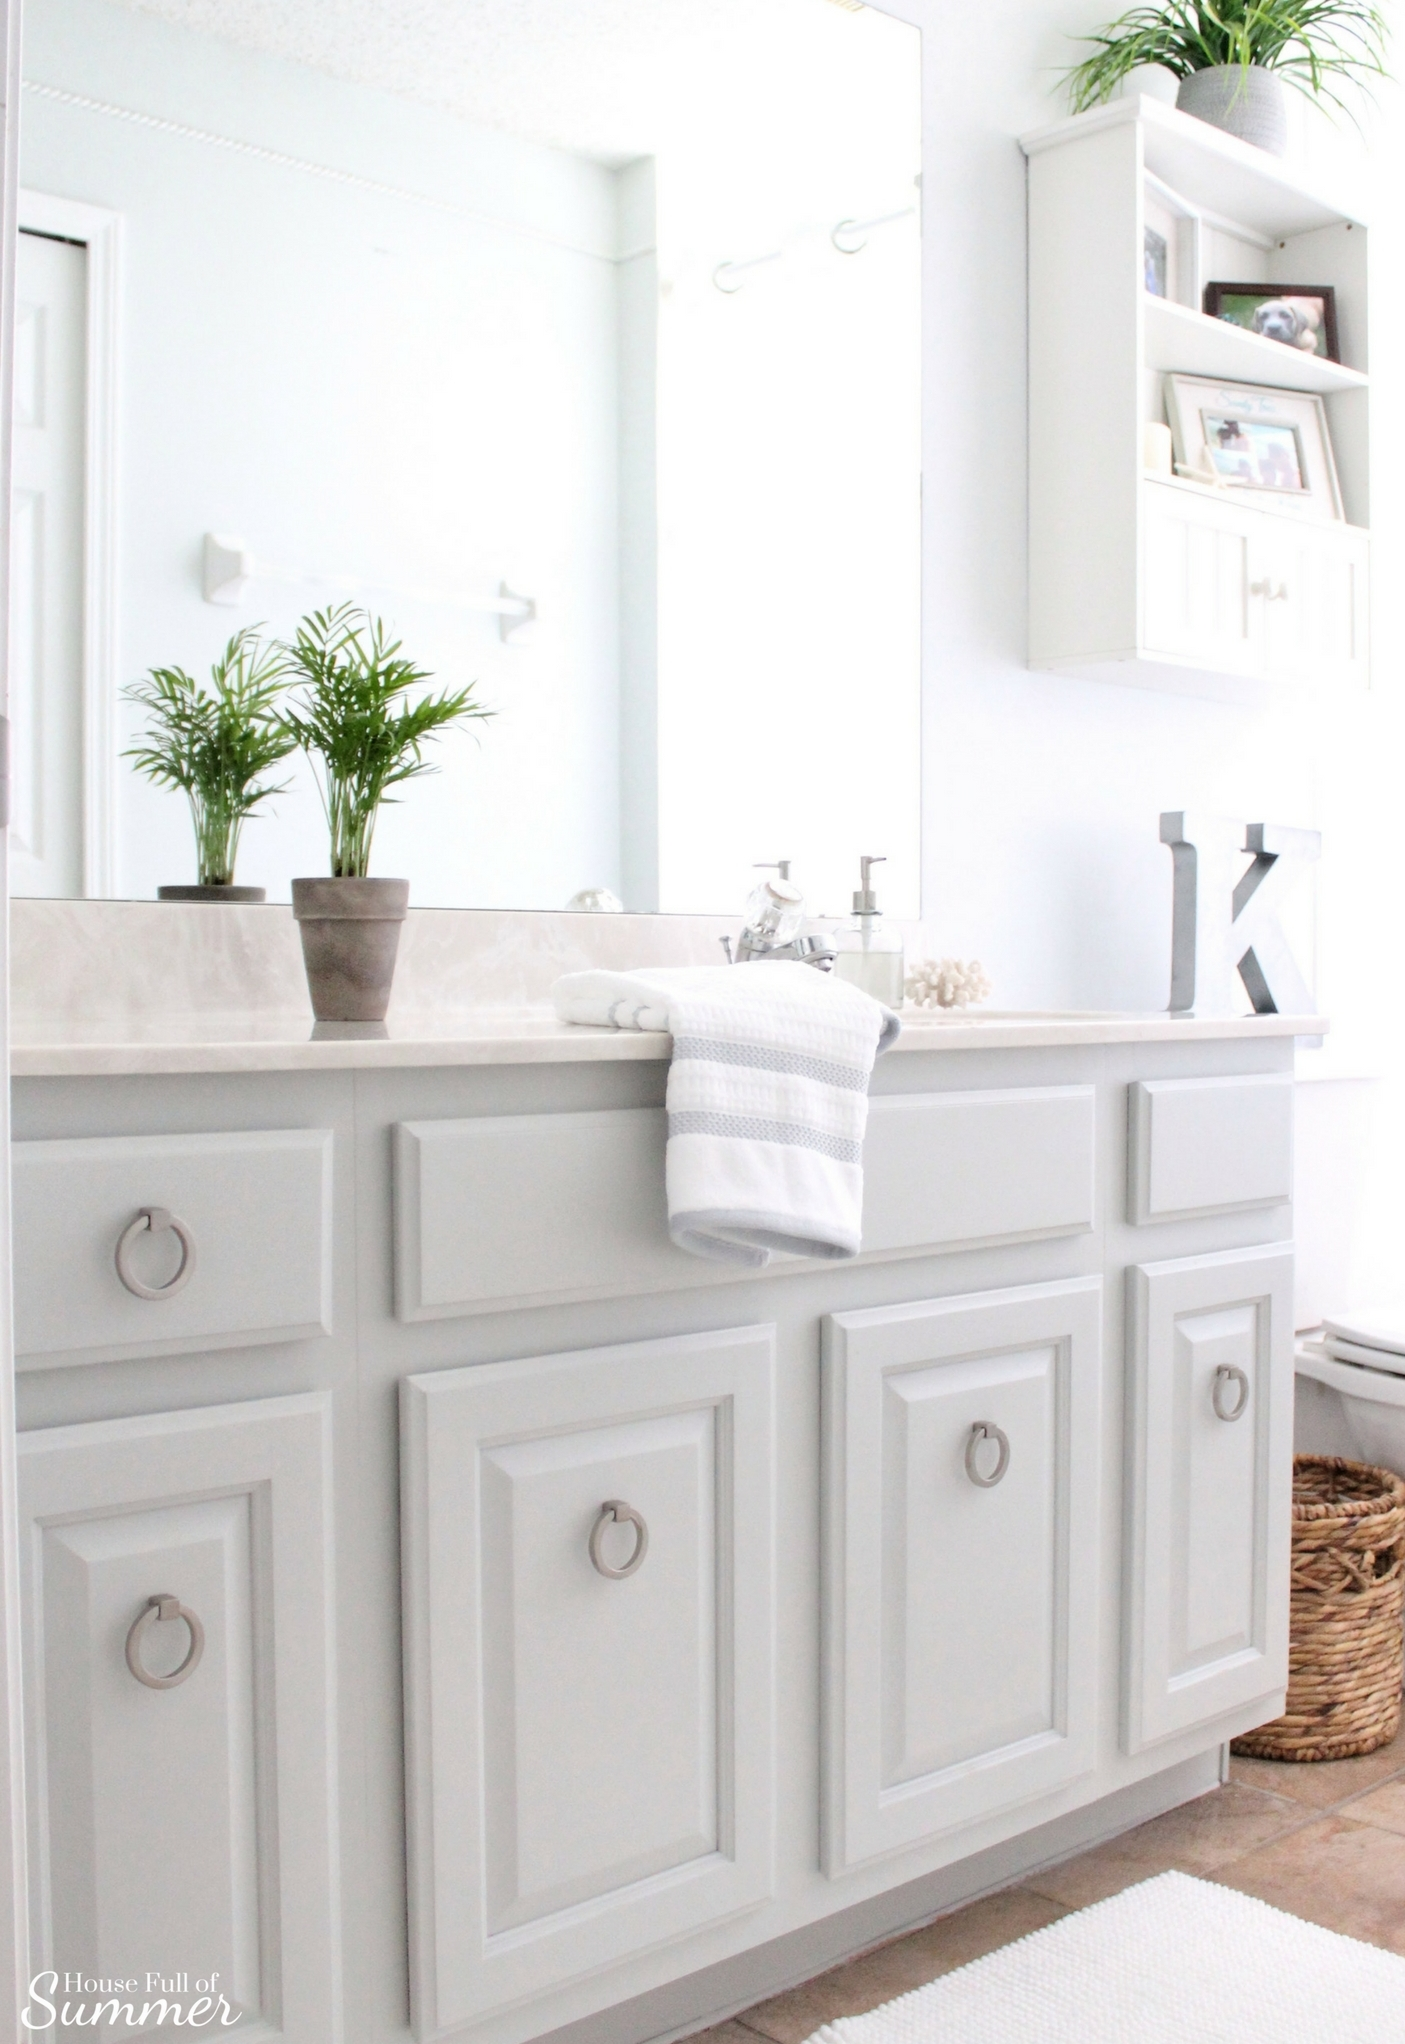 Painted Bathroom Cabinets Easy Bathroom Cabinet Transformation House Full Of Summer